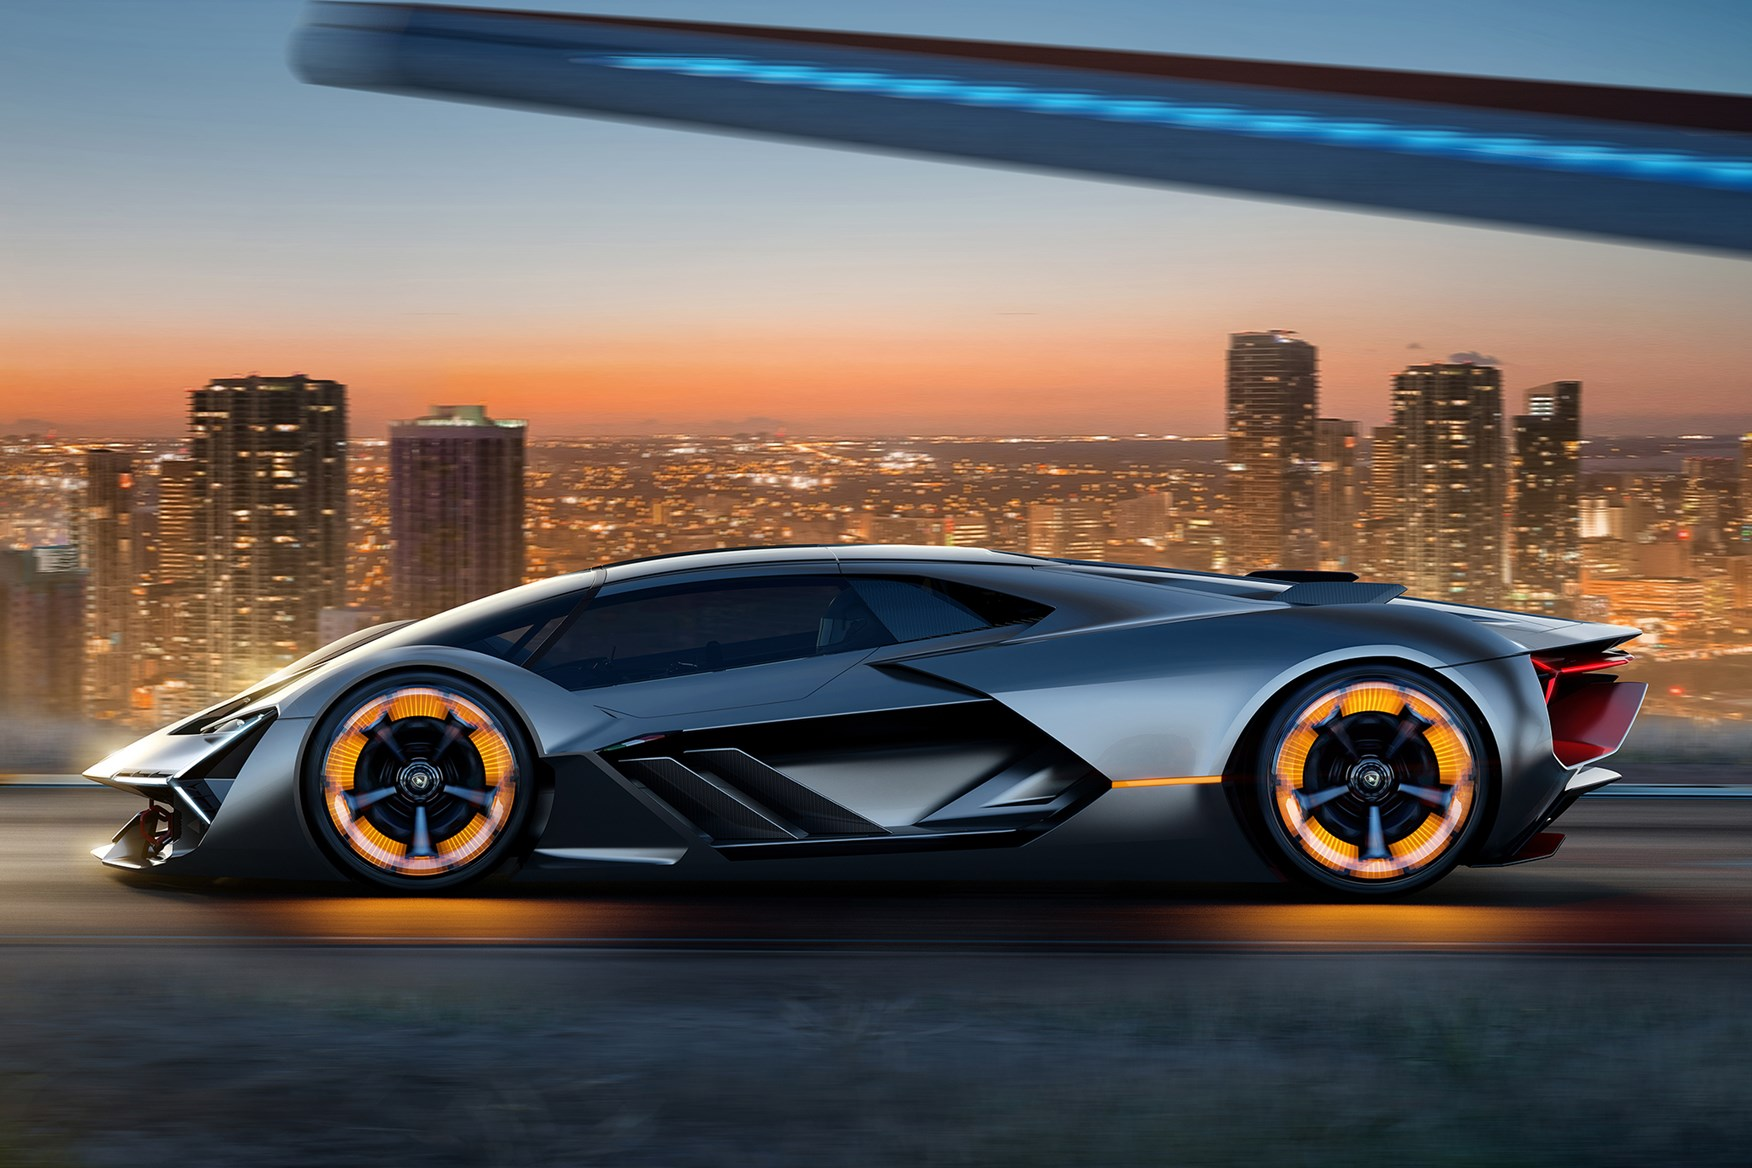 Captivating In Wheel Electric Motors And Self Healing Composite Bodywork: The New  Lamborghini Terzo Millennio